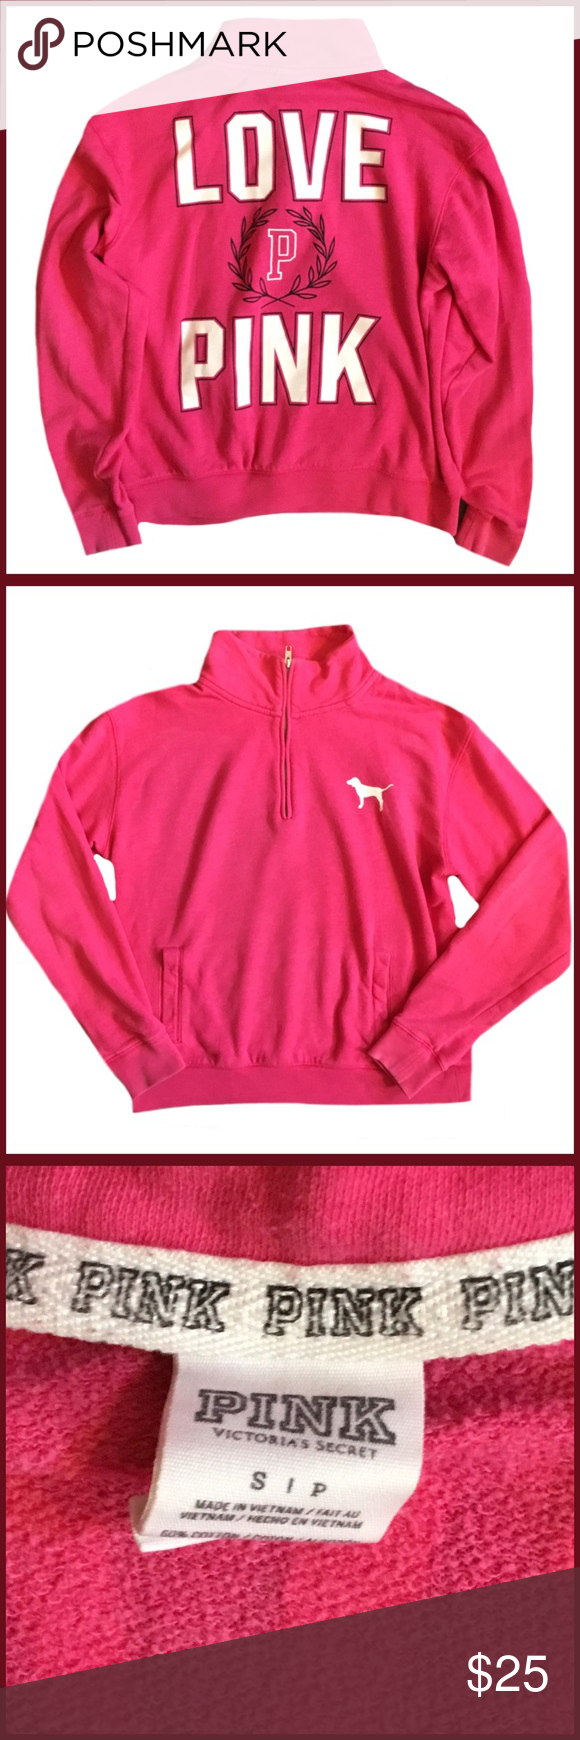 """☀️SALE☀️  VS Pink Long Sleeve Top ◾️Gently used VS Pink long sleeve half zip top                                                            ◾️Pink                                                                                                                         ◾️Measures 23"""" in length                                                                                                 ◾️Size small                                                                 ◾️Bundle and Save PINK…"""